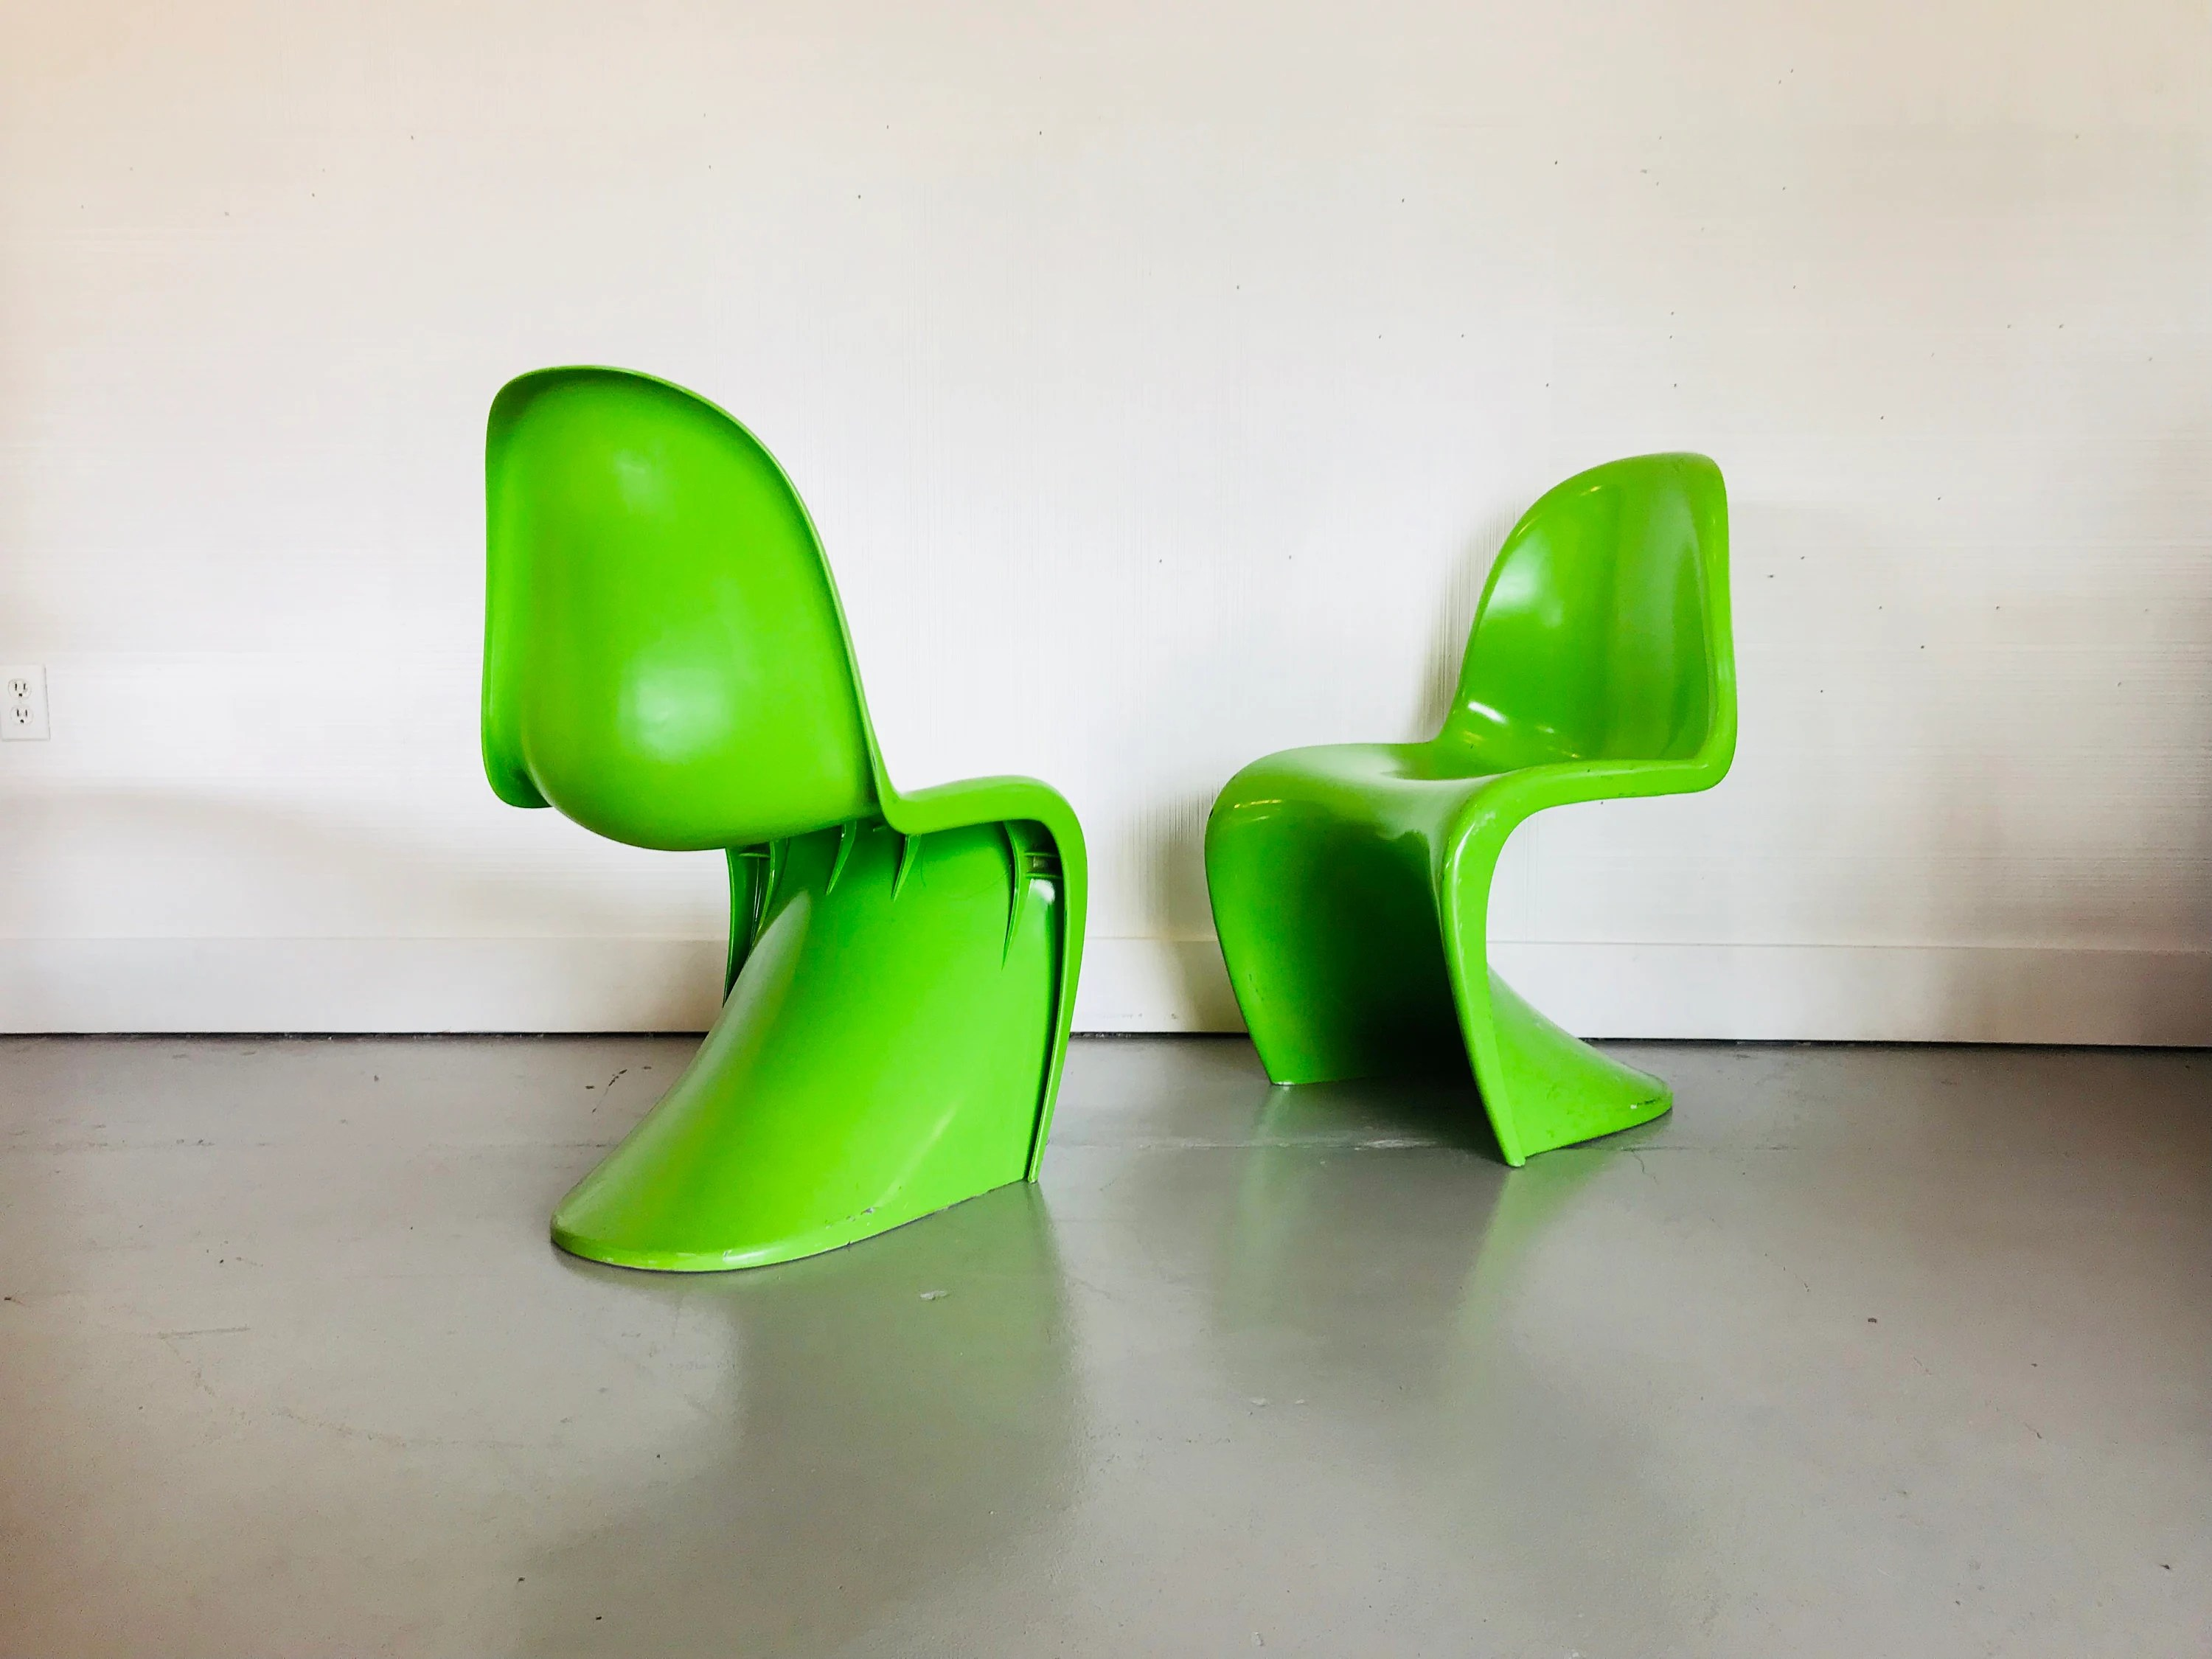 panton s chair executive office chairs perth mid century modern vernor attributed green pair etsy image 0